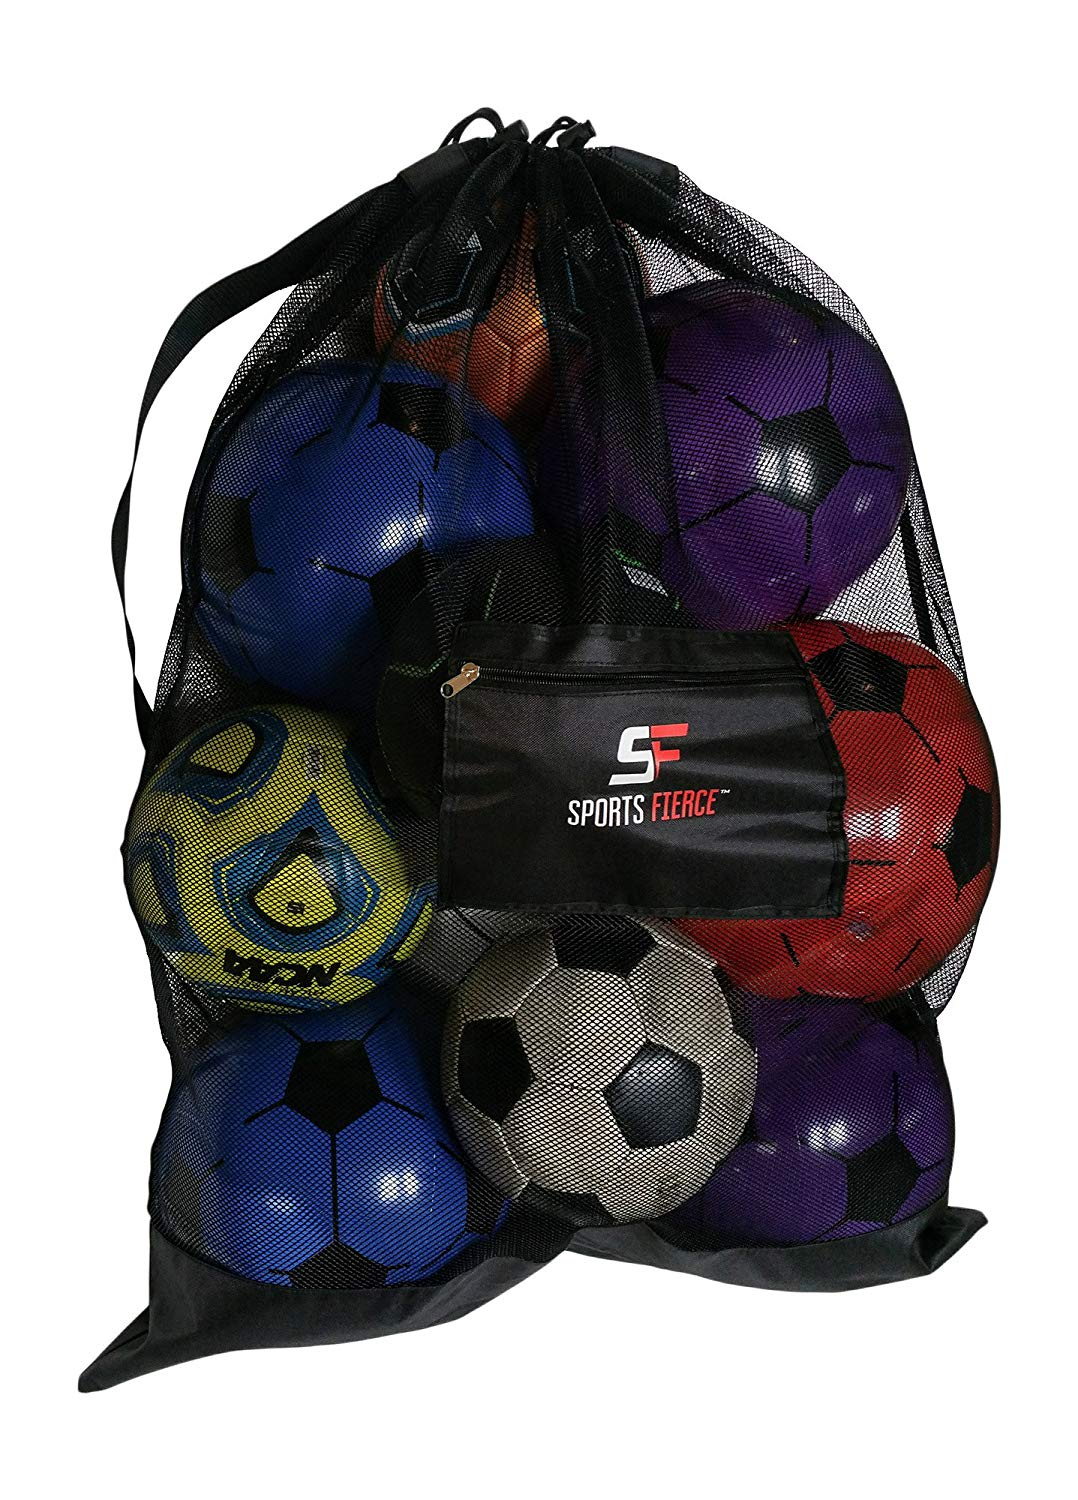 Exter-large soccer ball bag heavy duty sports mesh bag